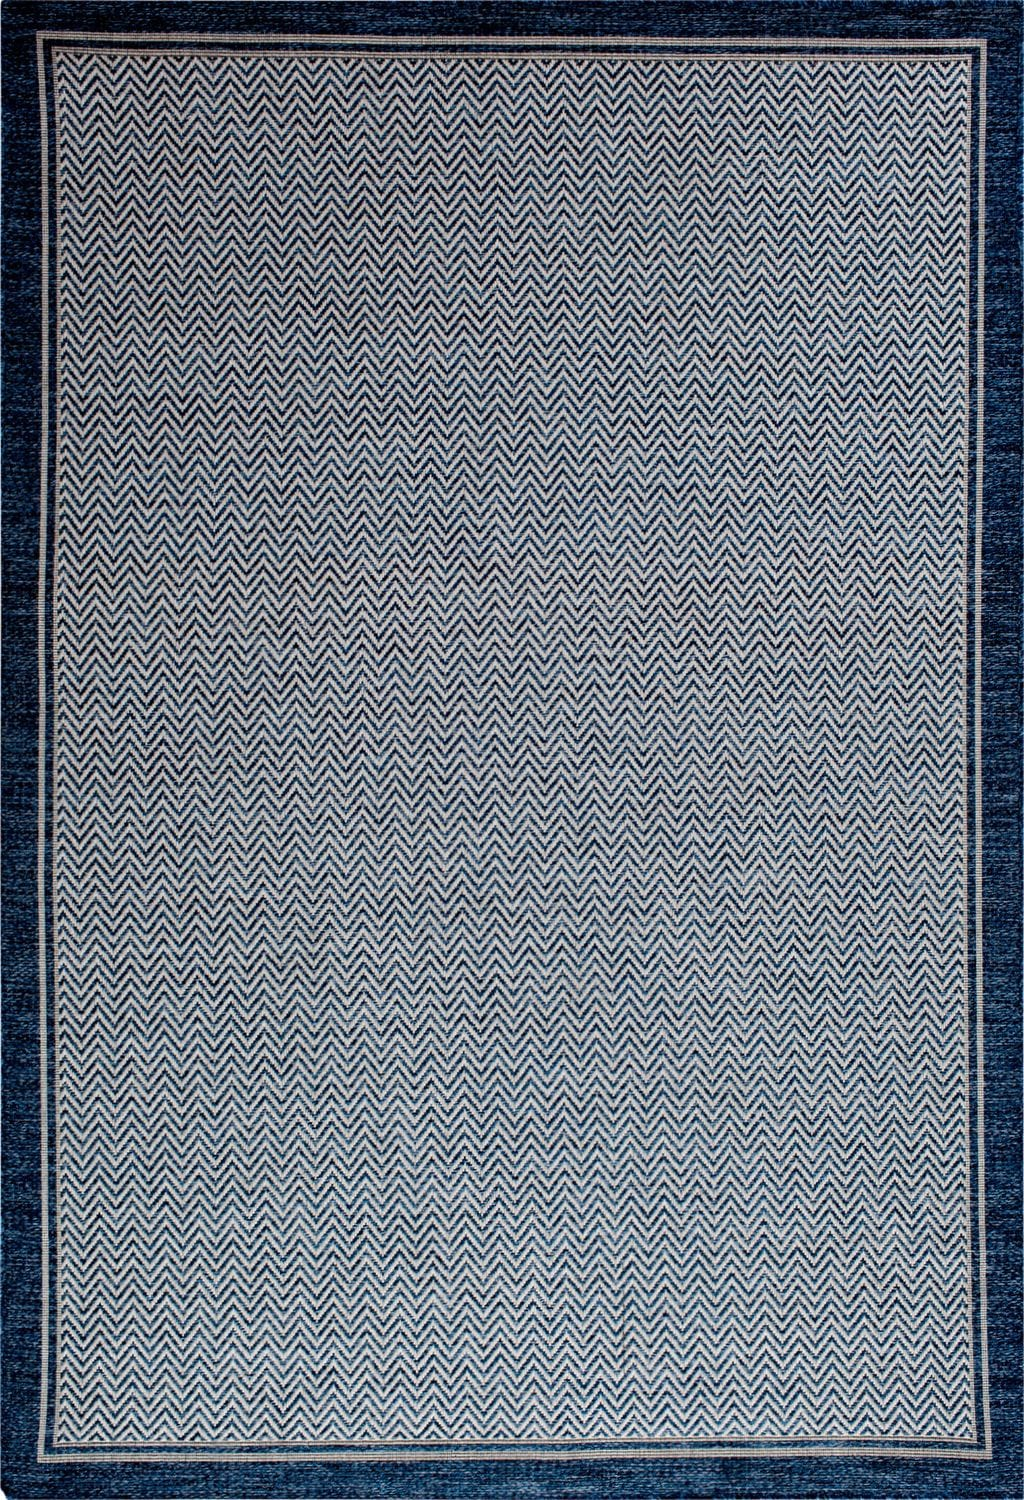 Outdoor Furniture - Dune Indoor/Outdoor Rug - Blue